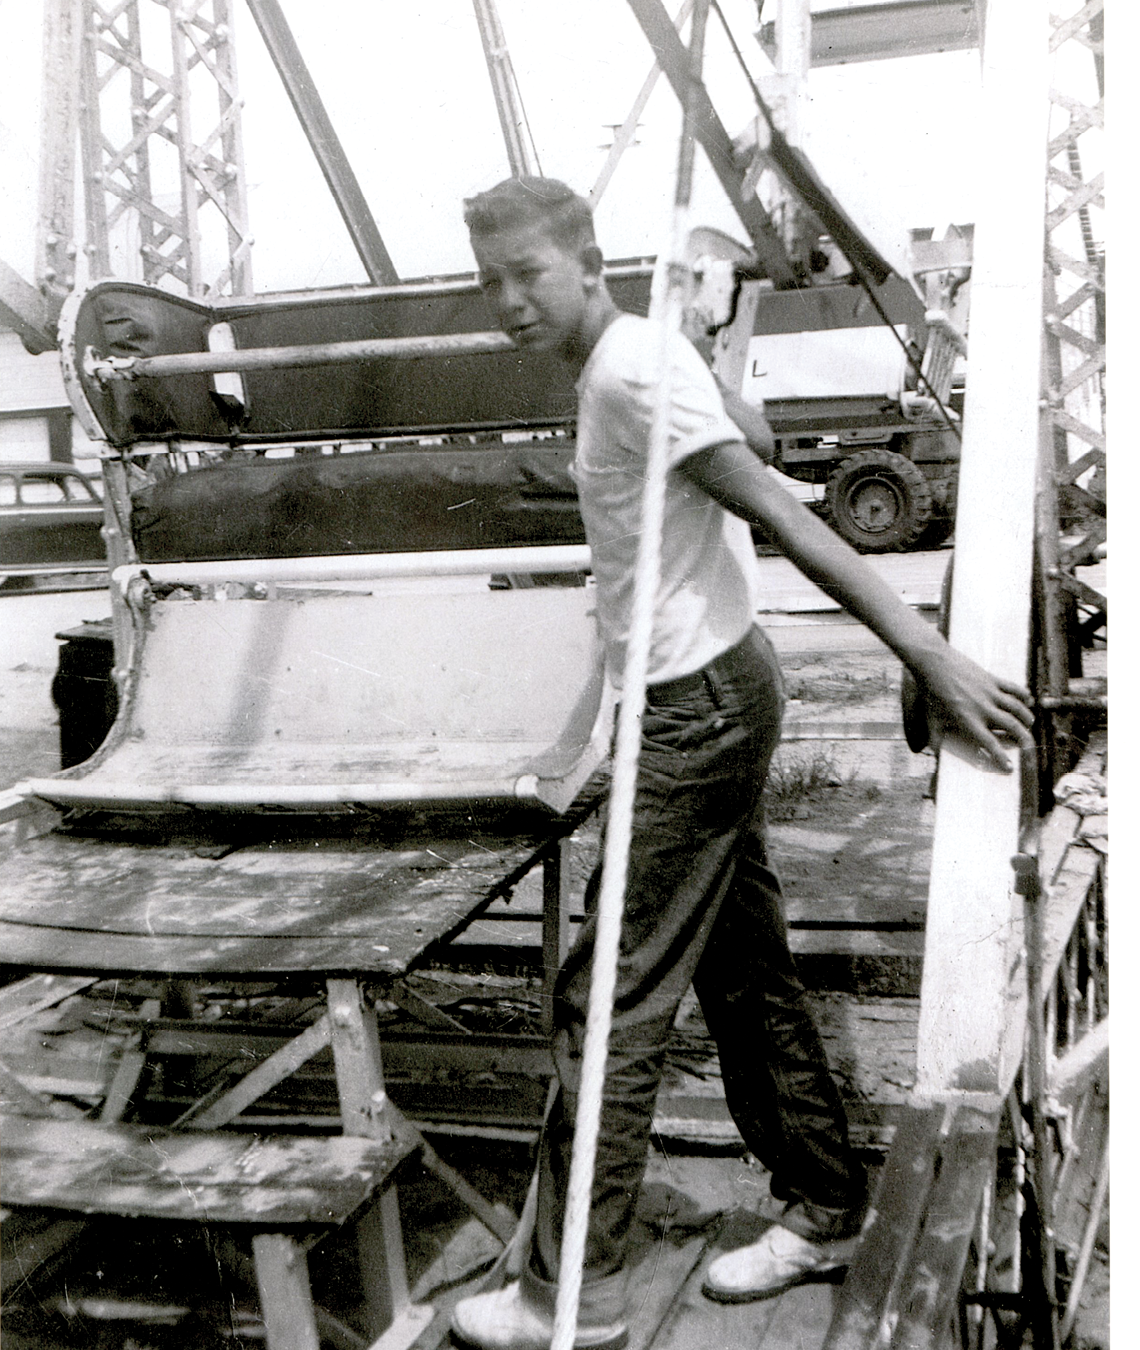 Robert Knight working the Ferris wheel in 1956